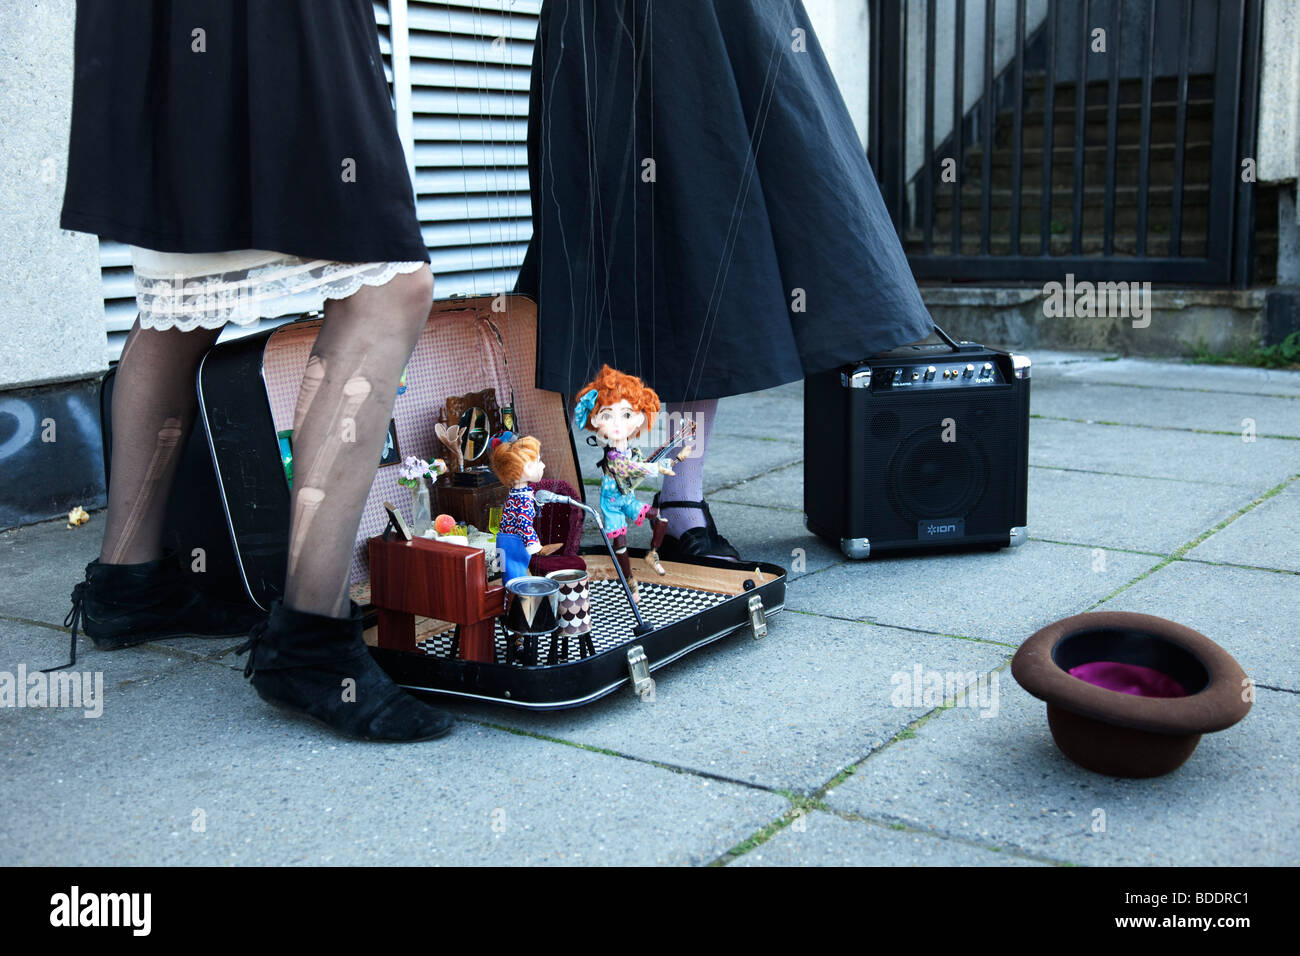 Two female puppeteers operate their puppet show on the Southbank. The puppets perform in a garage rock band. London. - Stock Image